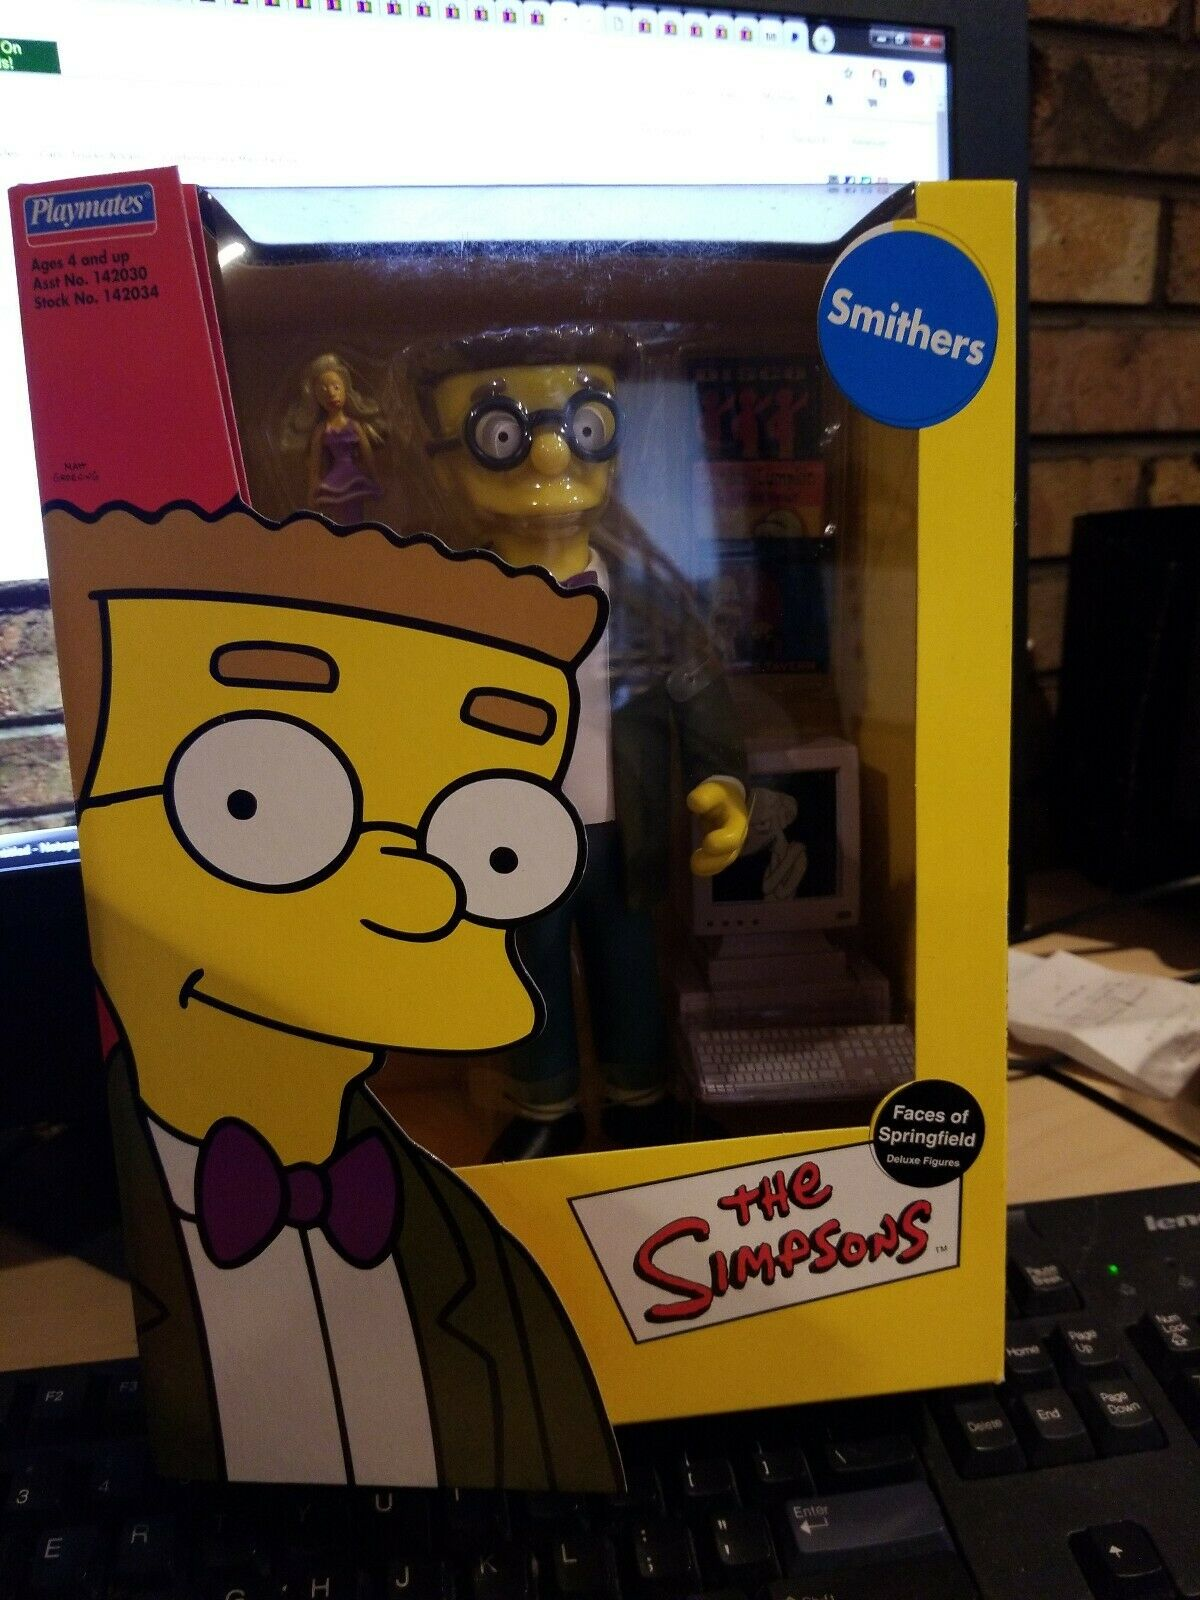 Playmates giocattoli Simpsons Smithers Faces Of Springfield  azione cifra  lo stile classico